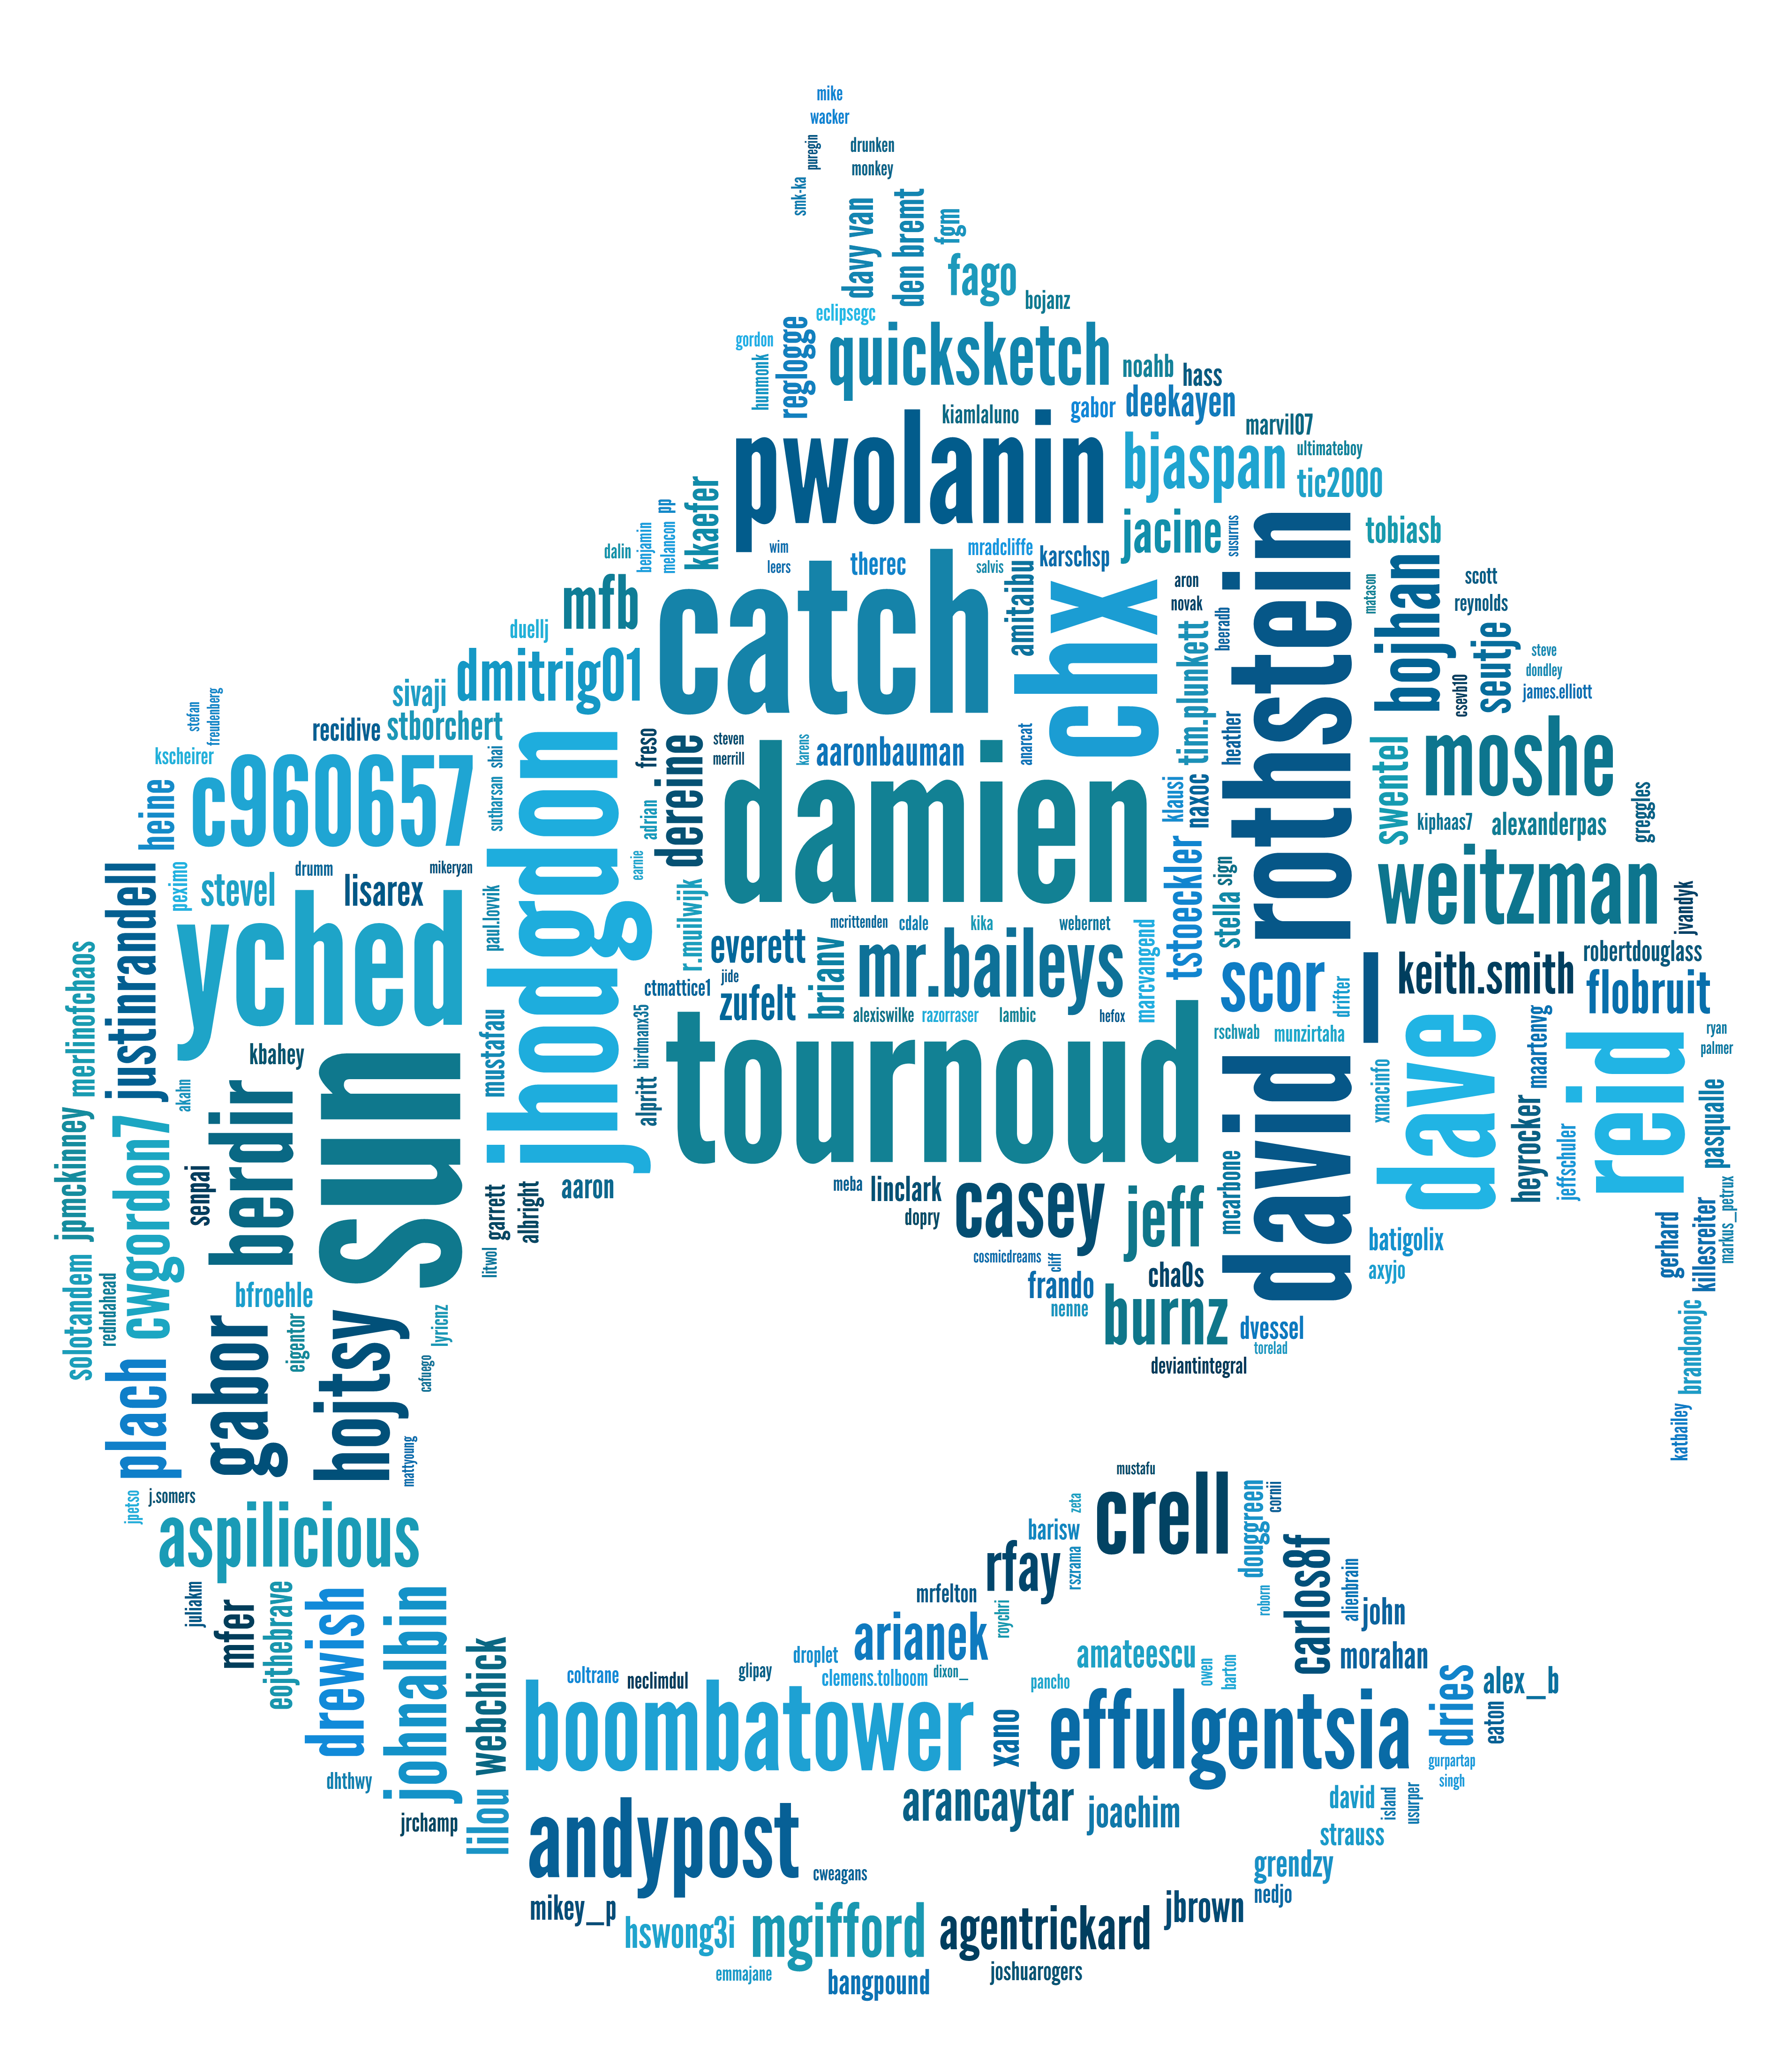 Drupal - Some Contributors Of Drupal 7 Arranged In A Tag Cloud Shaped Like Druplicon